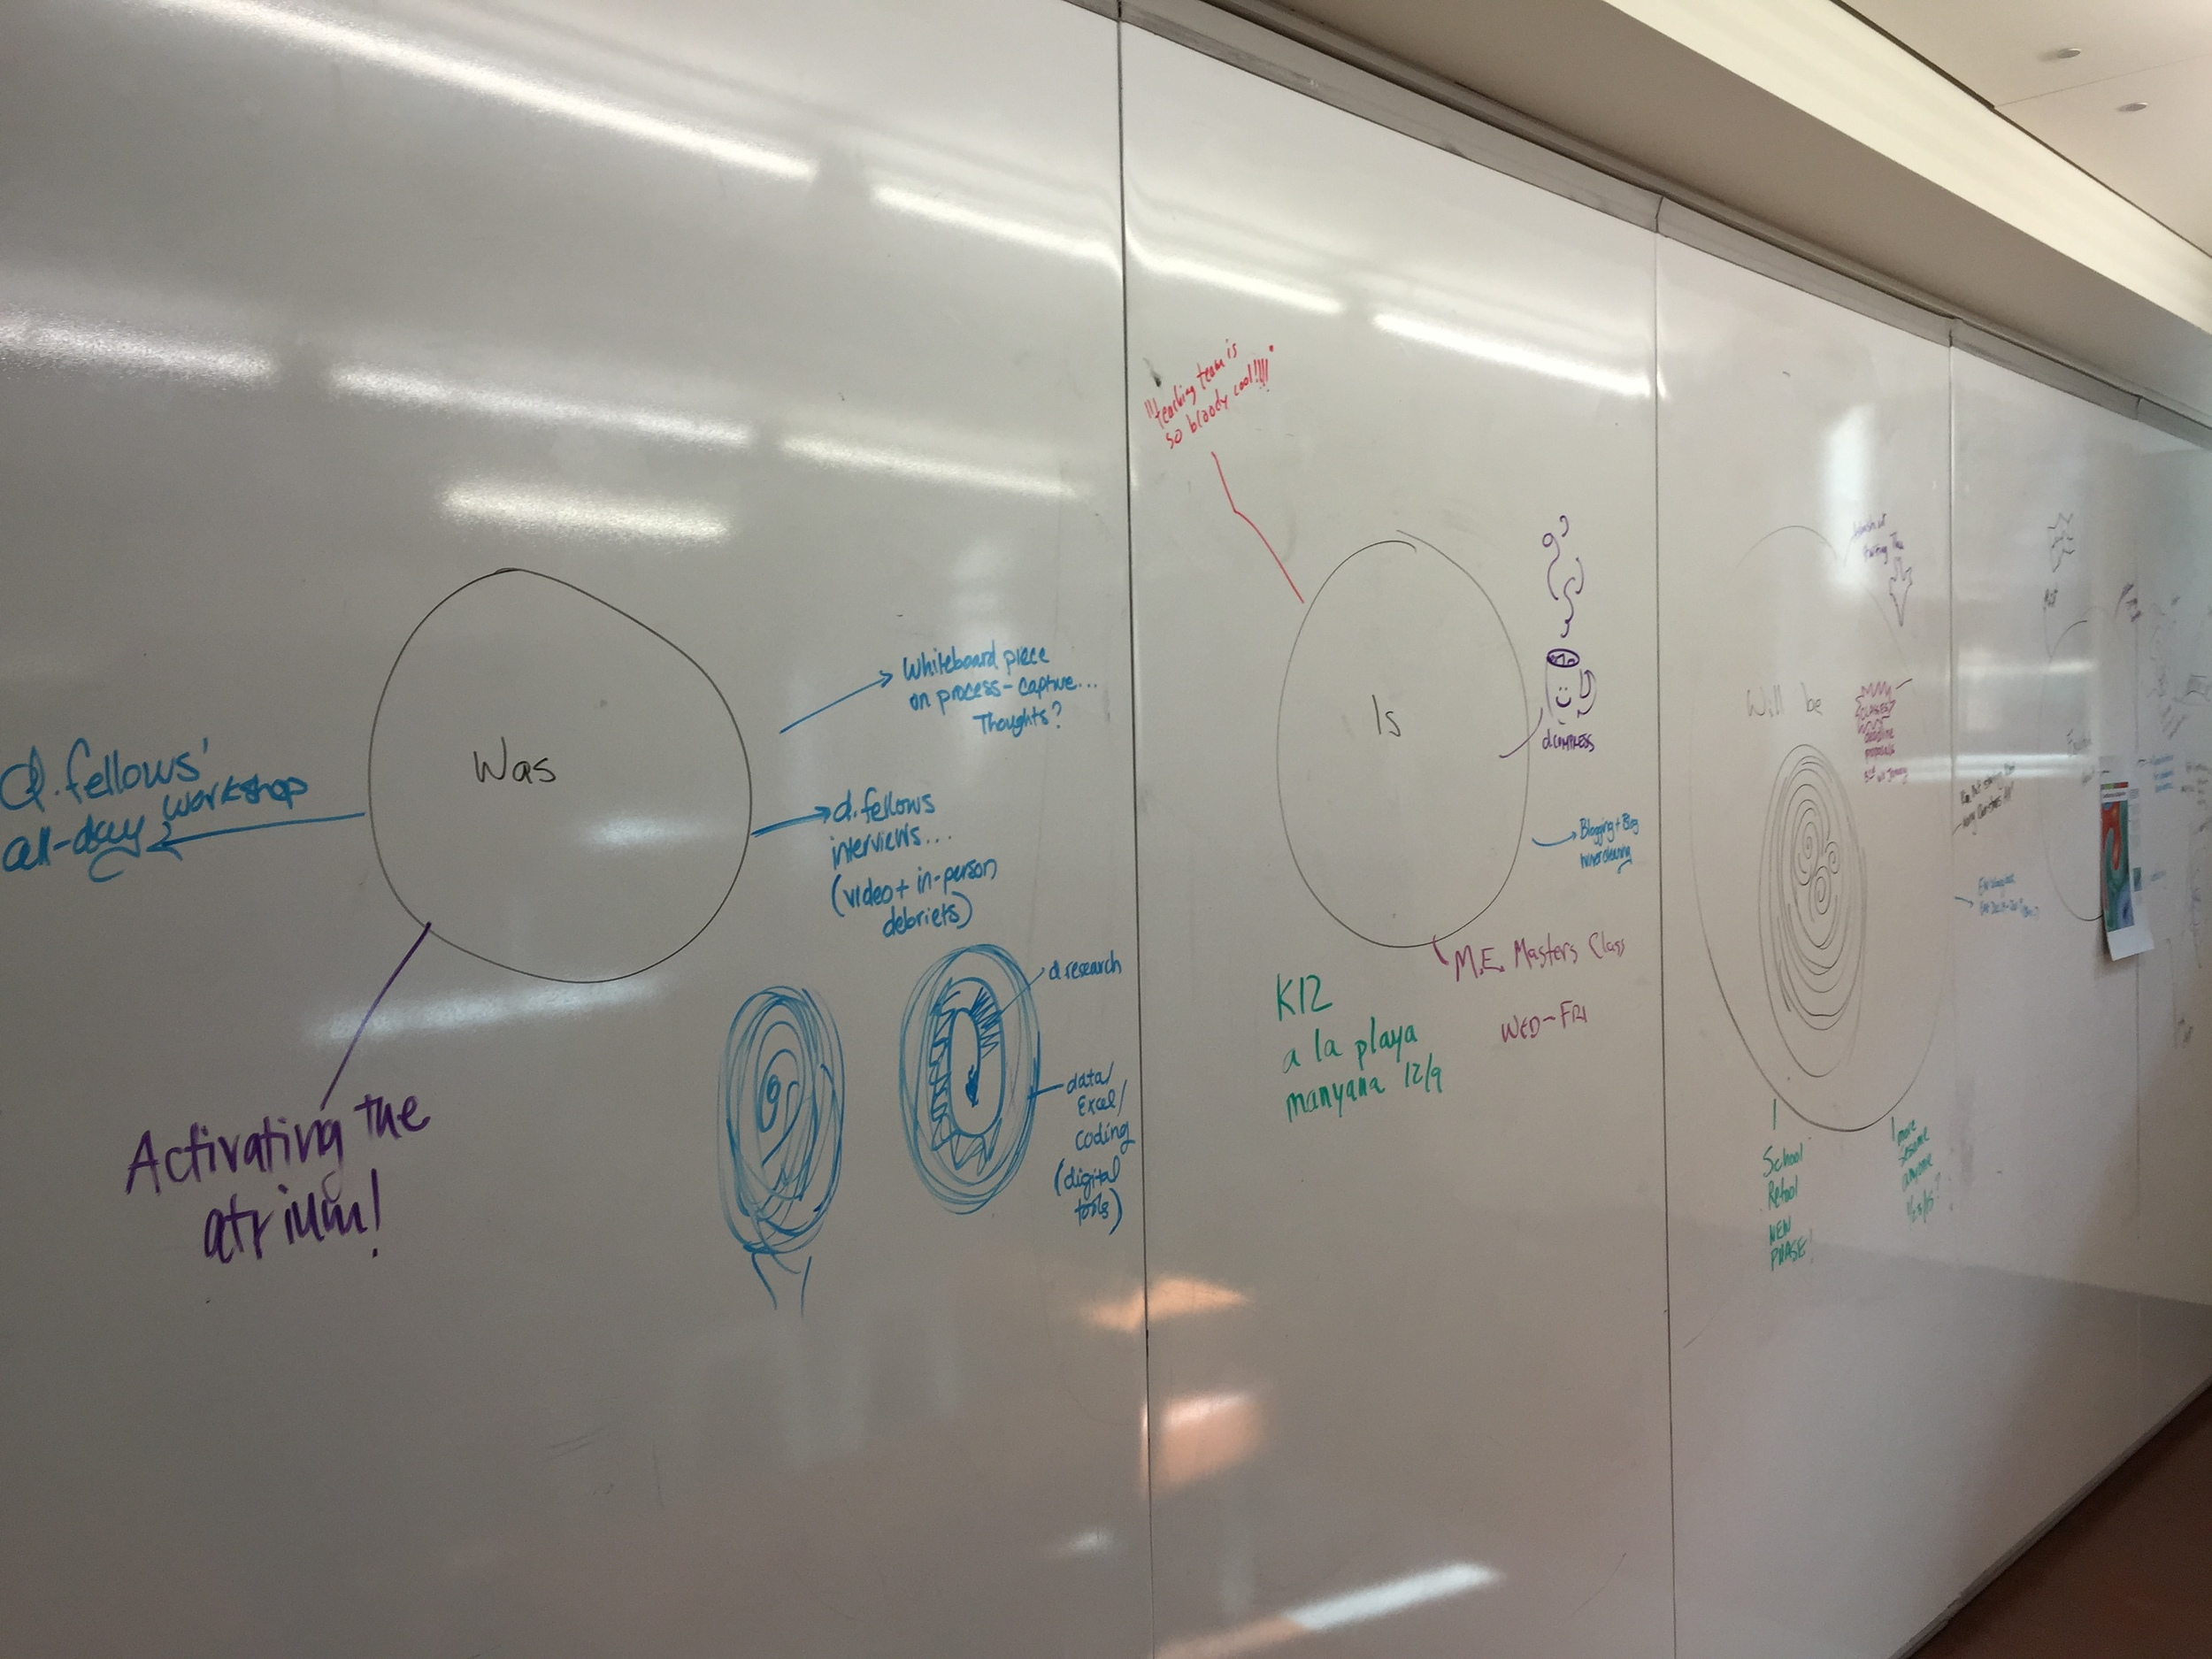 The whiteboards at the d.school following the Monday Morning Meeting (and some other work). (Emi Kolawole)